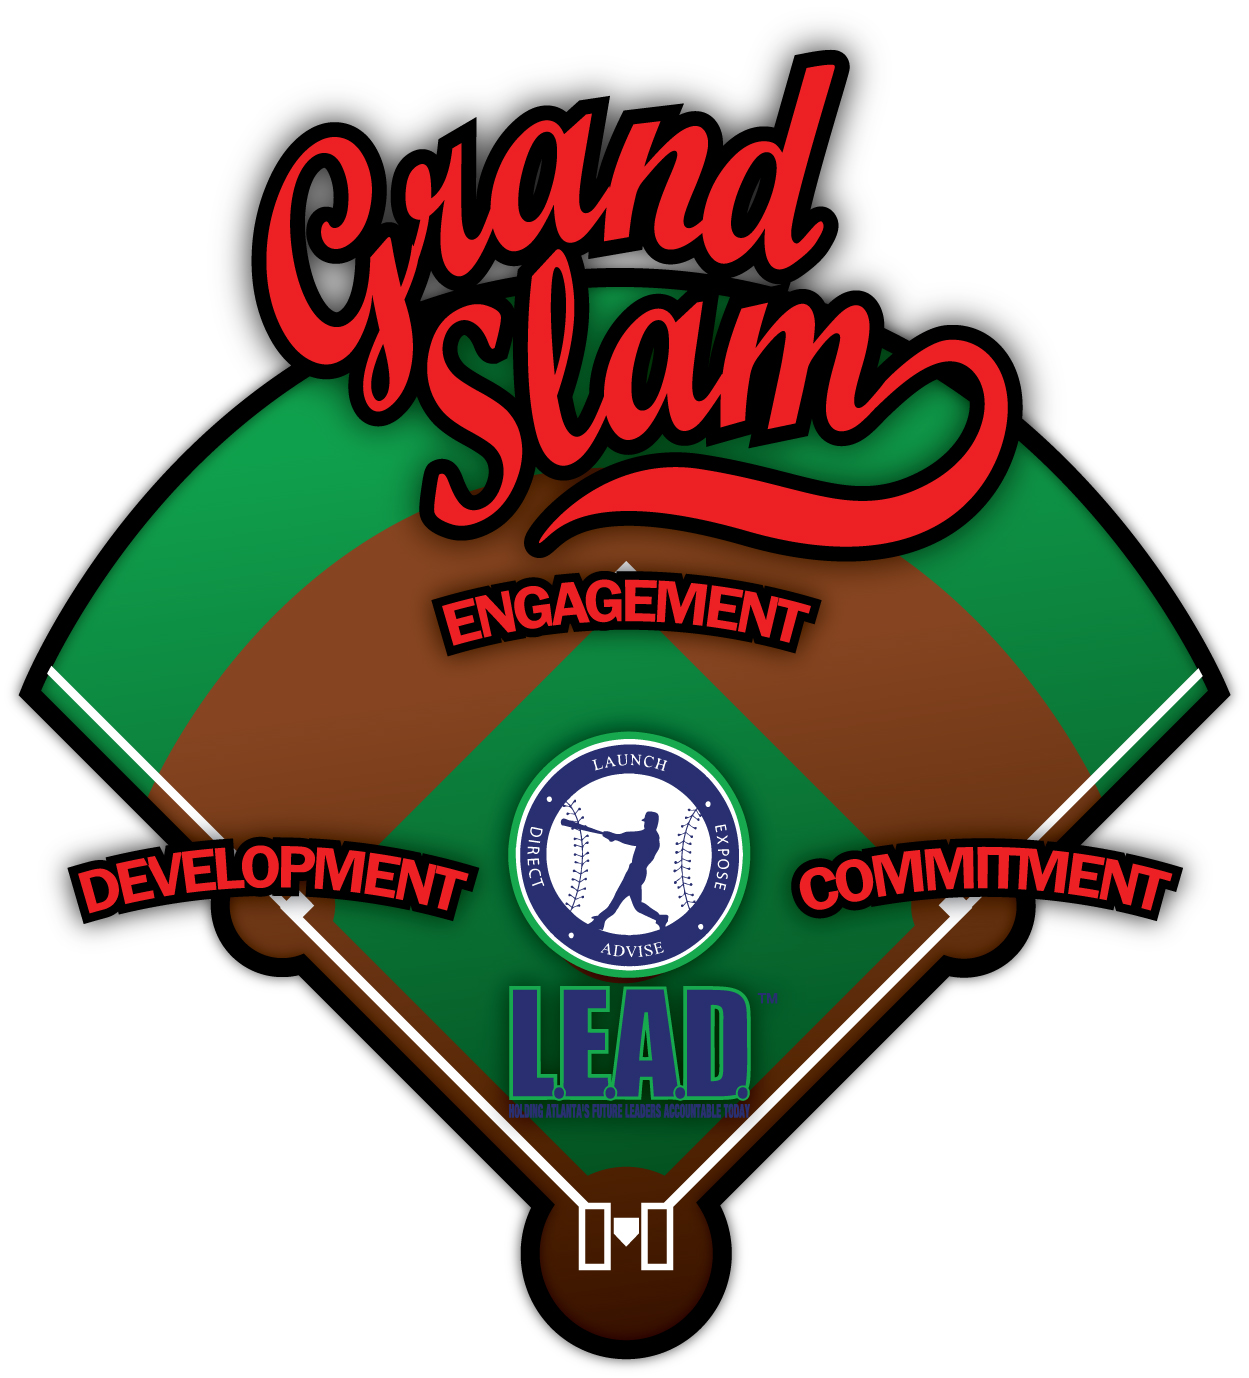 a grand slam is l e a d knocking it out of the park with bases loaded to empower atlanta s underserved inner city youth to lead atlanta the nation